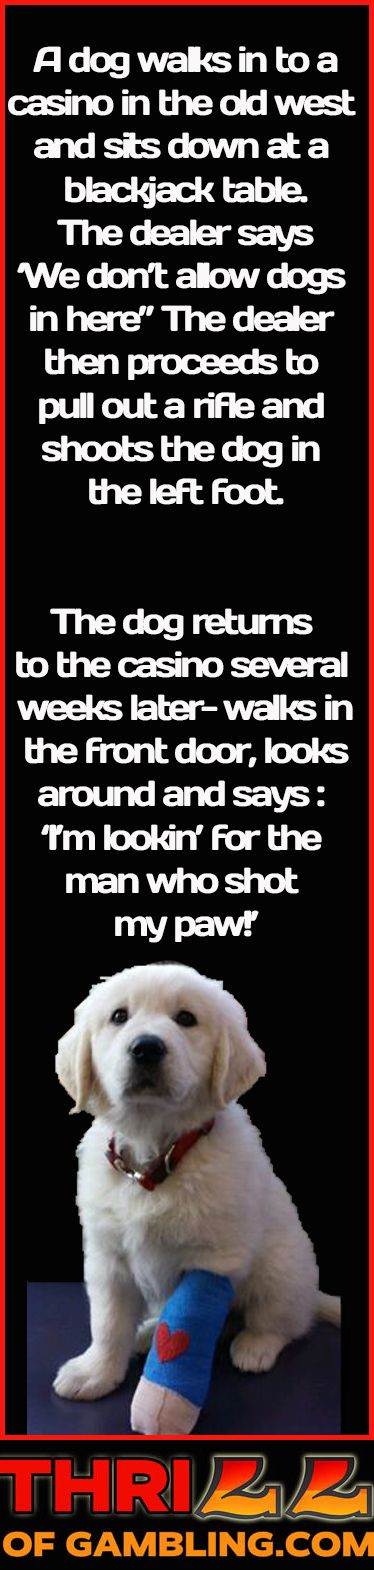 Short funny gambling jokes special event planning casino